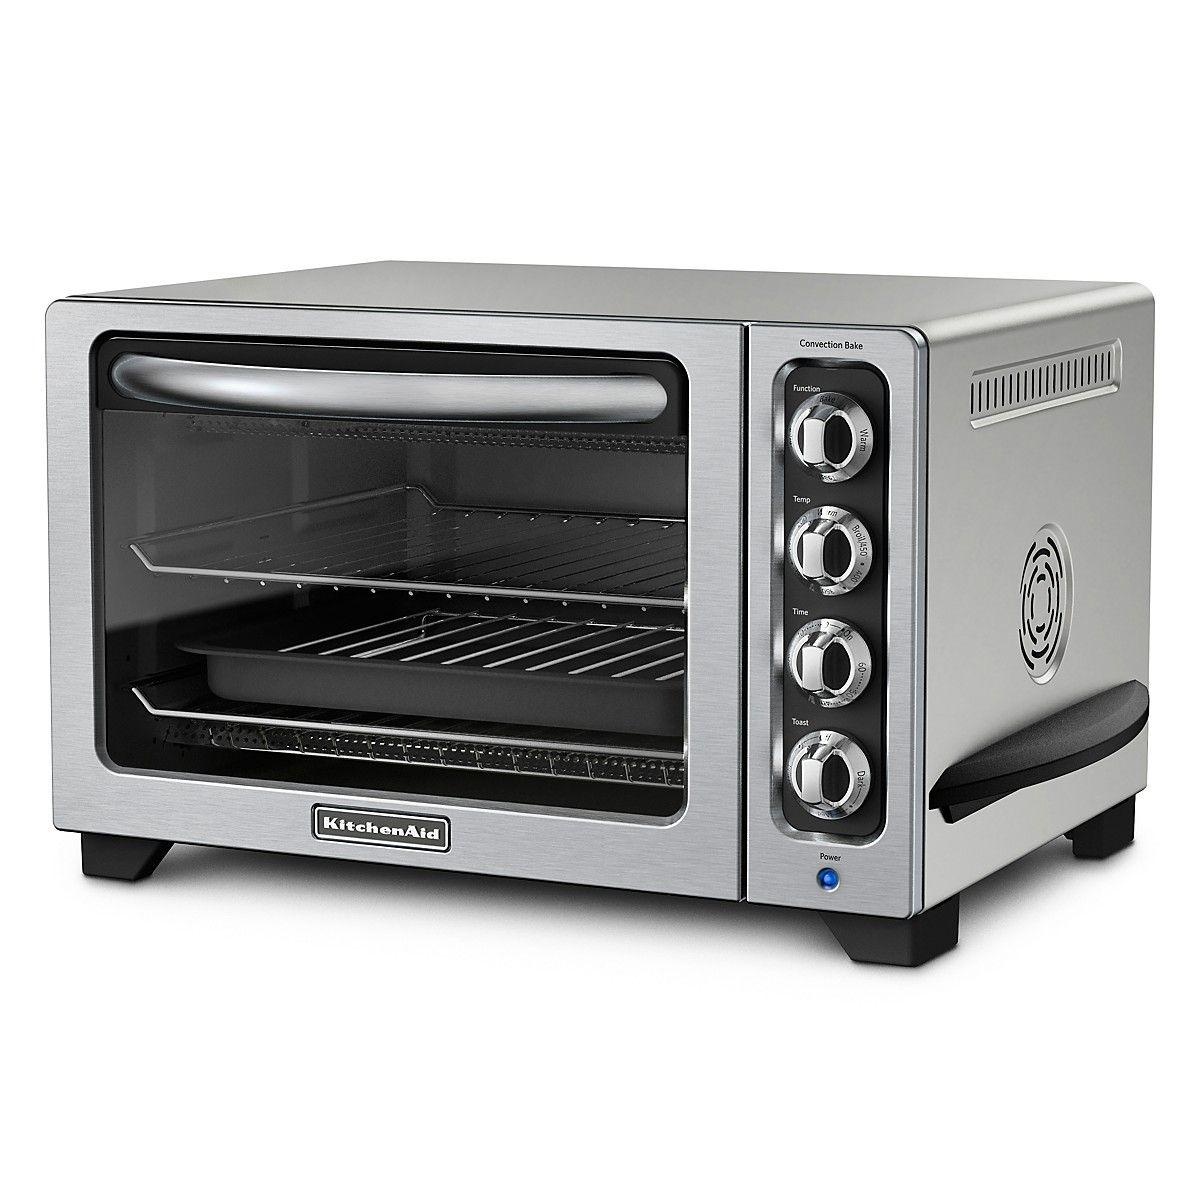 Kitchenaid convection toaster oven bloomingdales